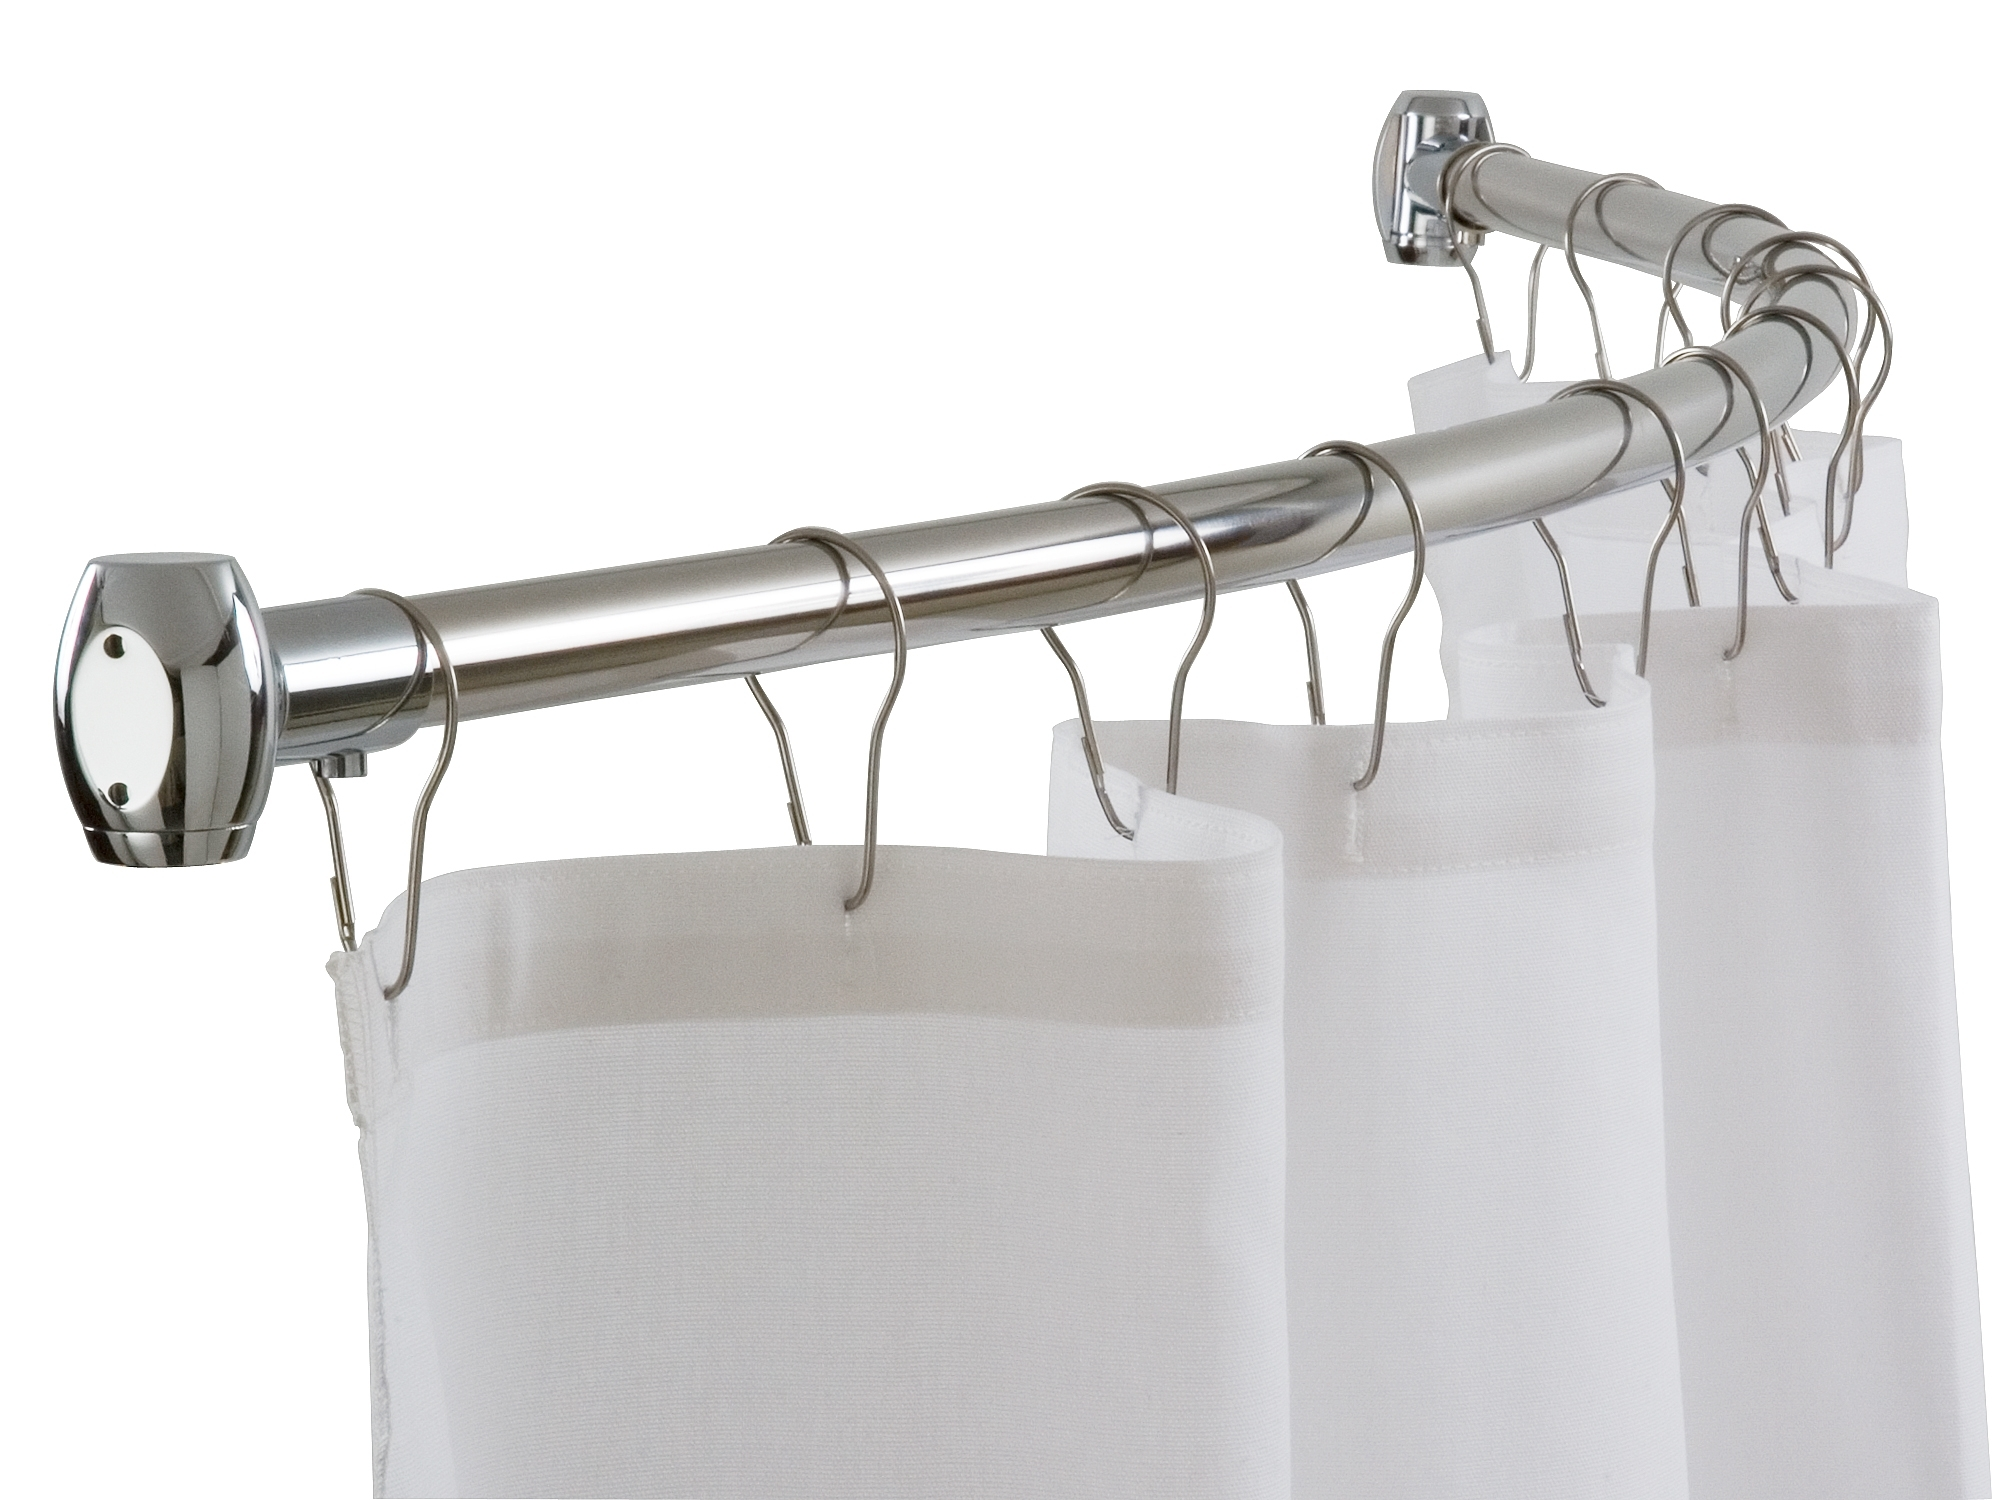 Spring Loaded Shower Curtain Rod Nz | Savae.org